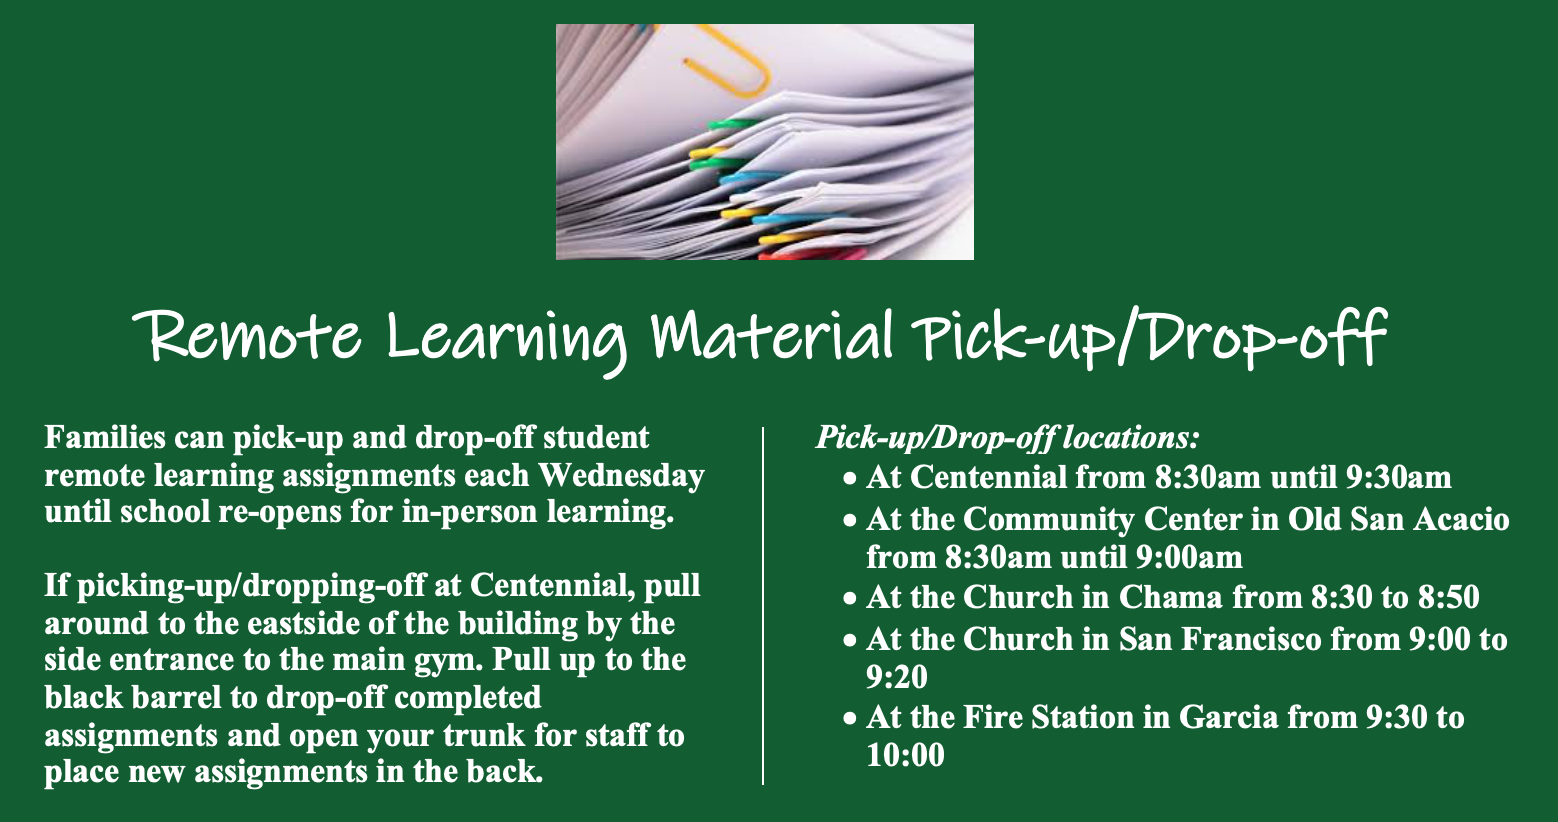 Remote learning material pick-up/drop off